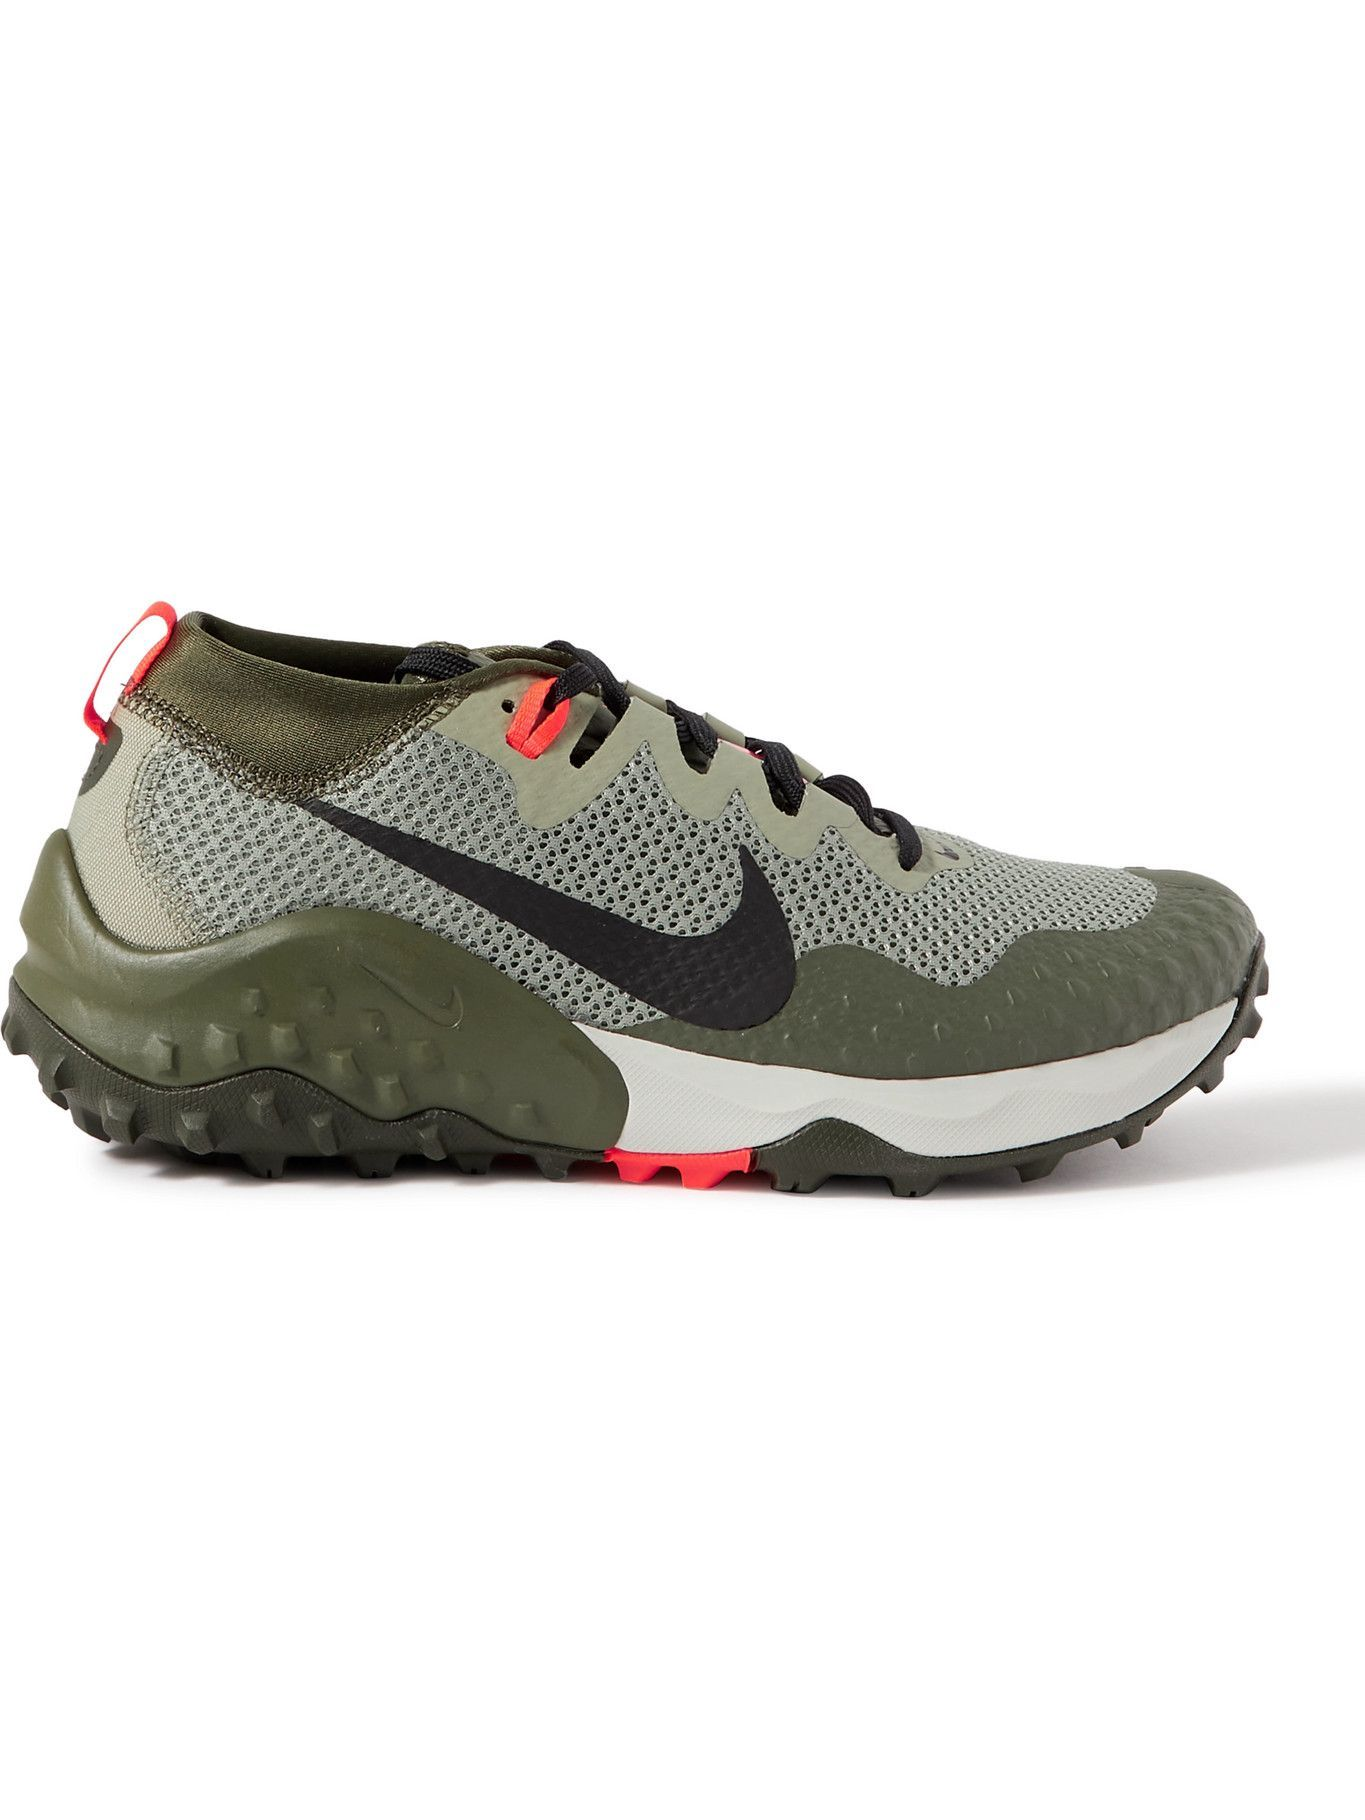 Photo: NIKE RUNNING - Nike Wildhorse 7 Canvas, Rubber and Mesh Running Sneakers - Green